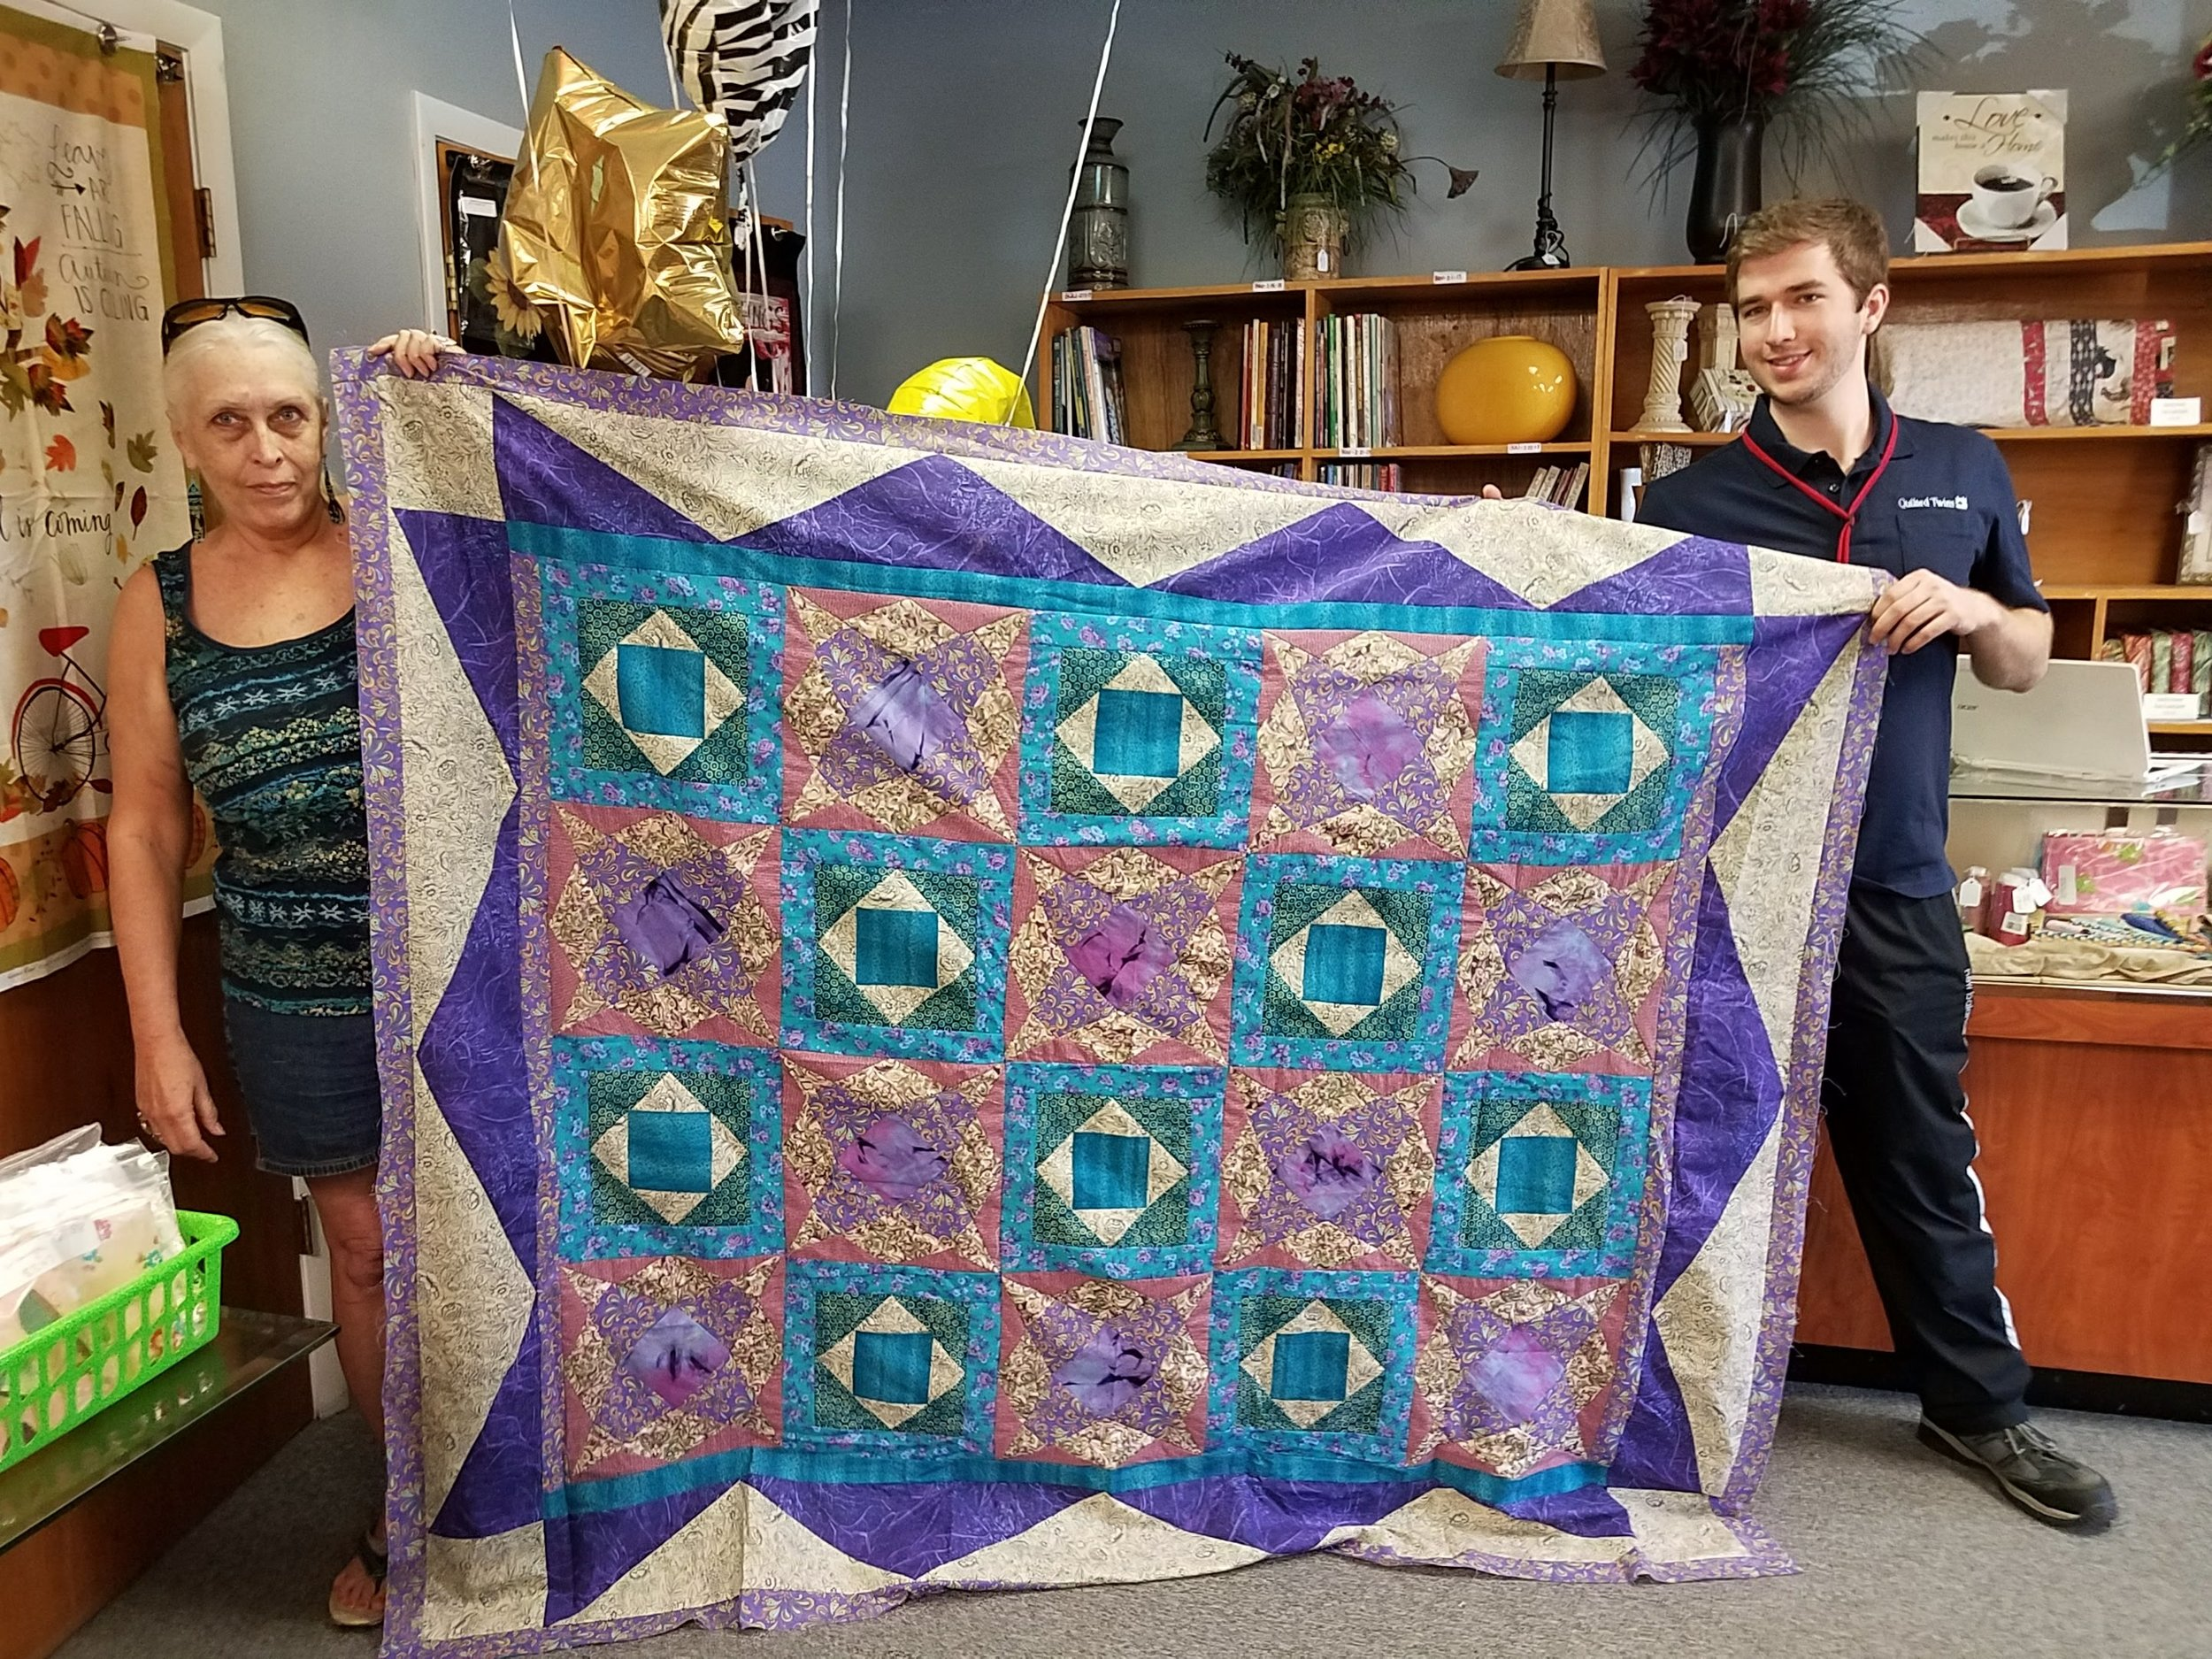 On 5.10.18 Helen Newcombe (below) brought in a beautifully blue quilt top she had made. Our fabric is the turquoise blender fabric. It's for sale  here: